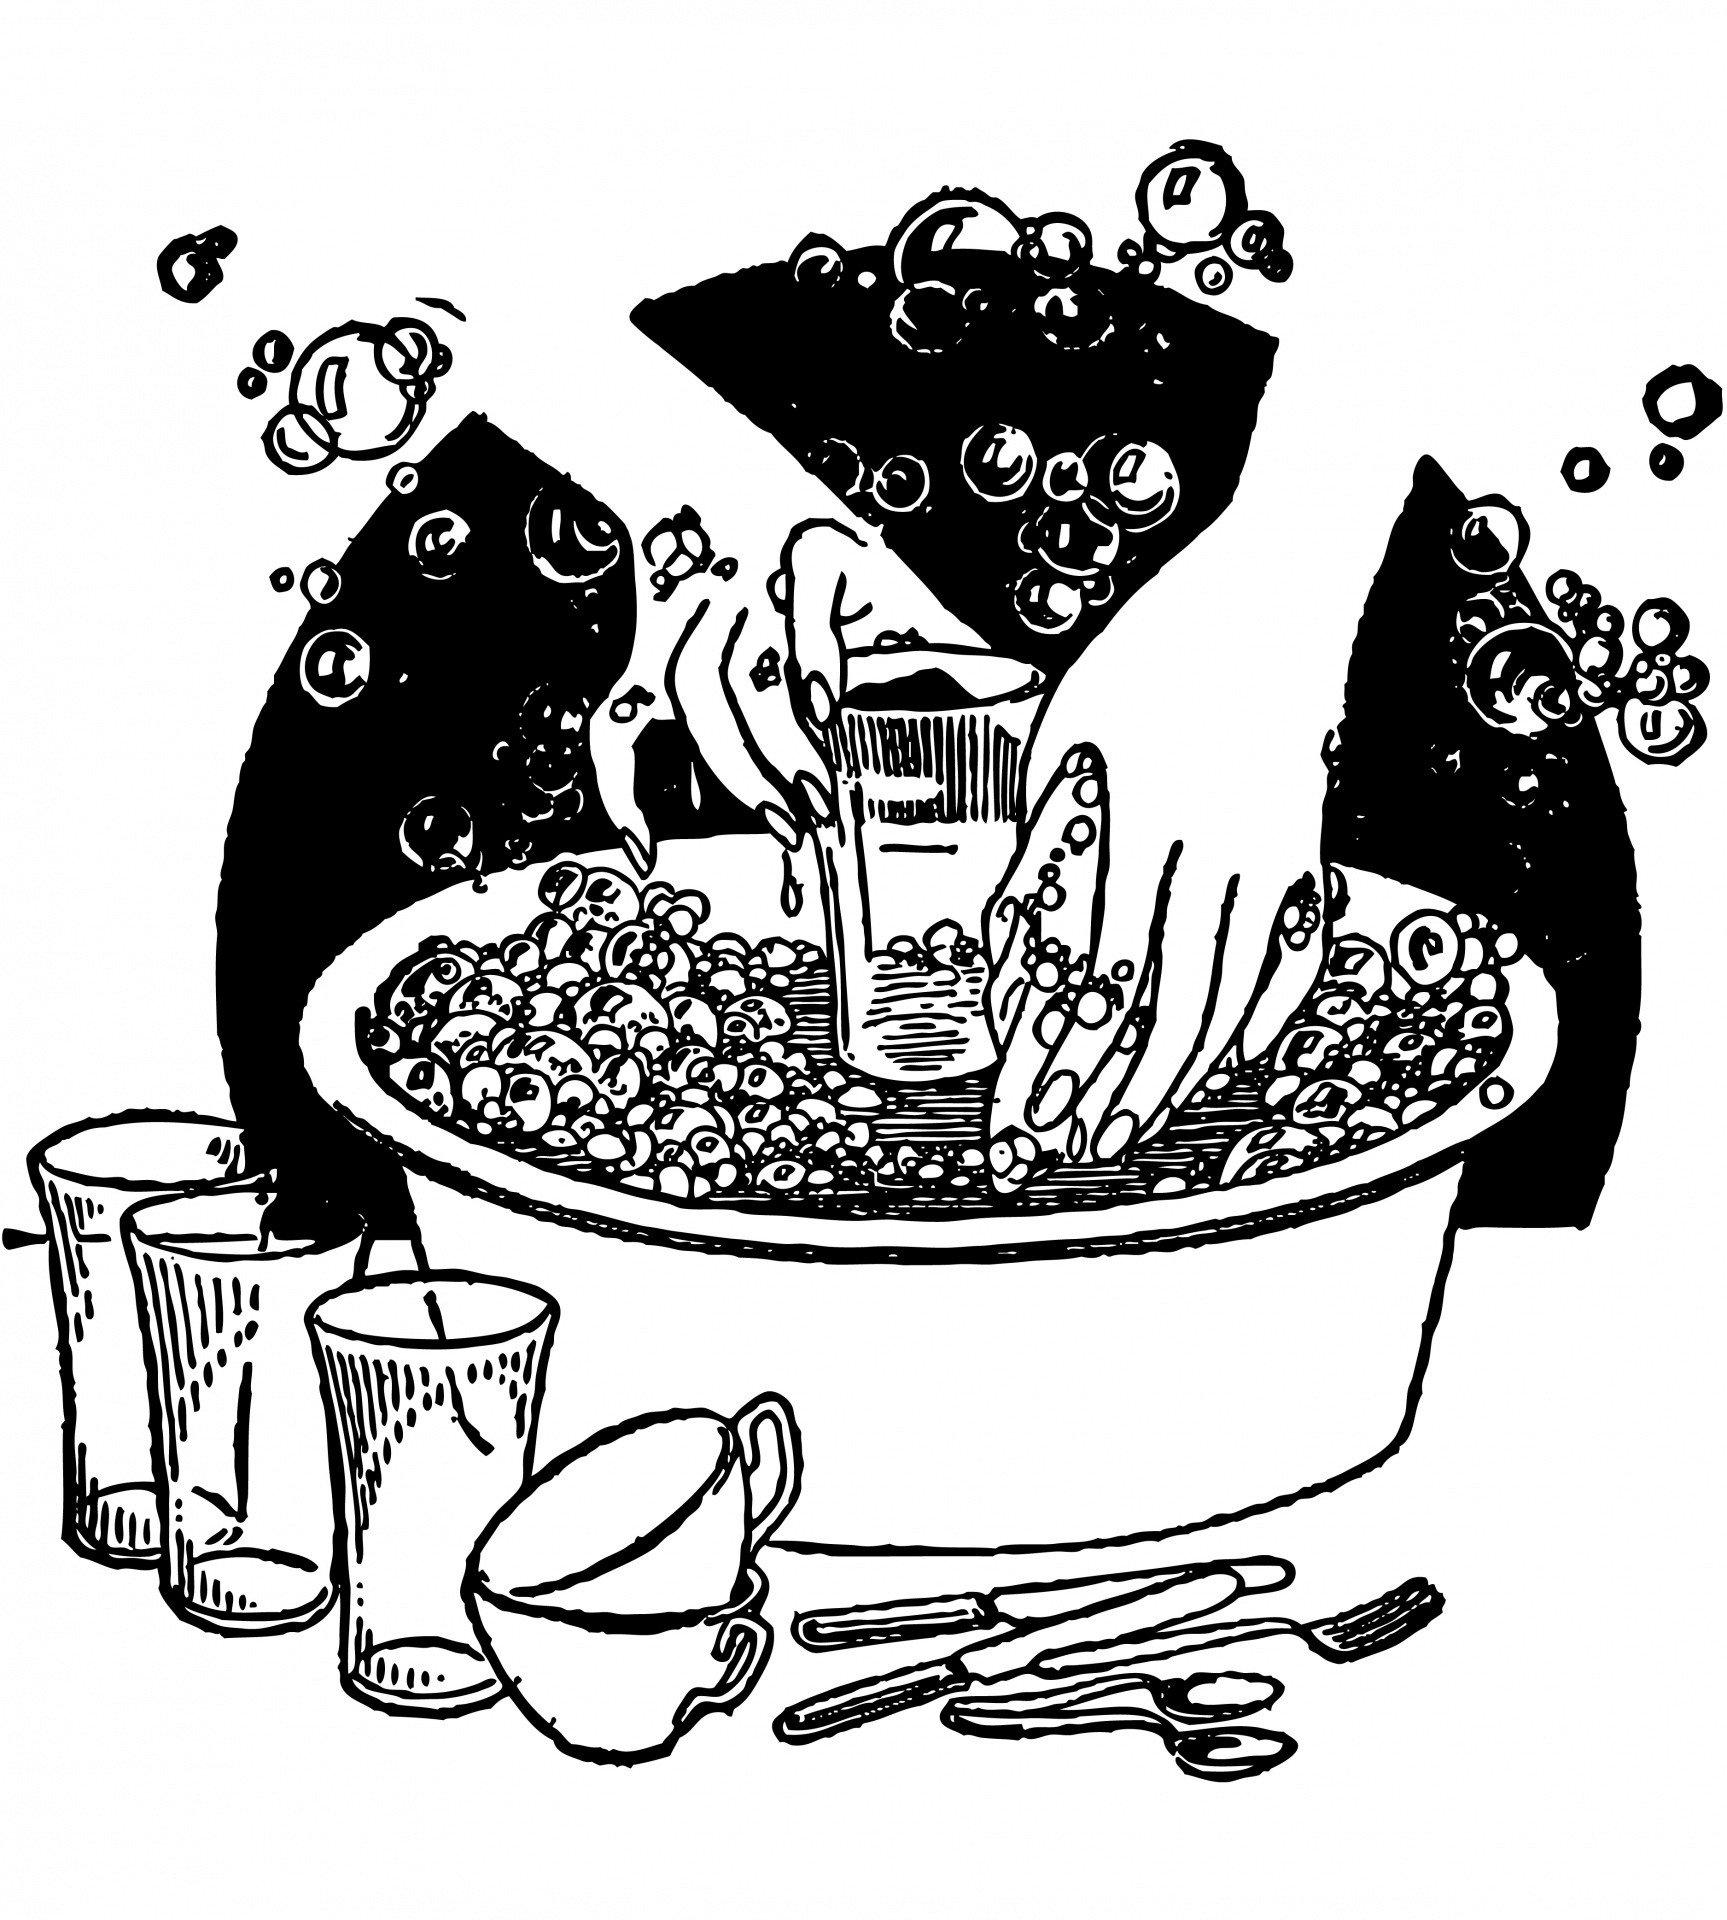 Free clipart washing dishes jpg free library Free Clean Dishes Cliparts, Download Free Clip Art, Free Clip Art on ... jpg free library